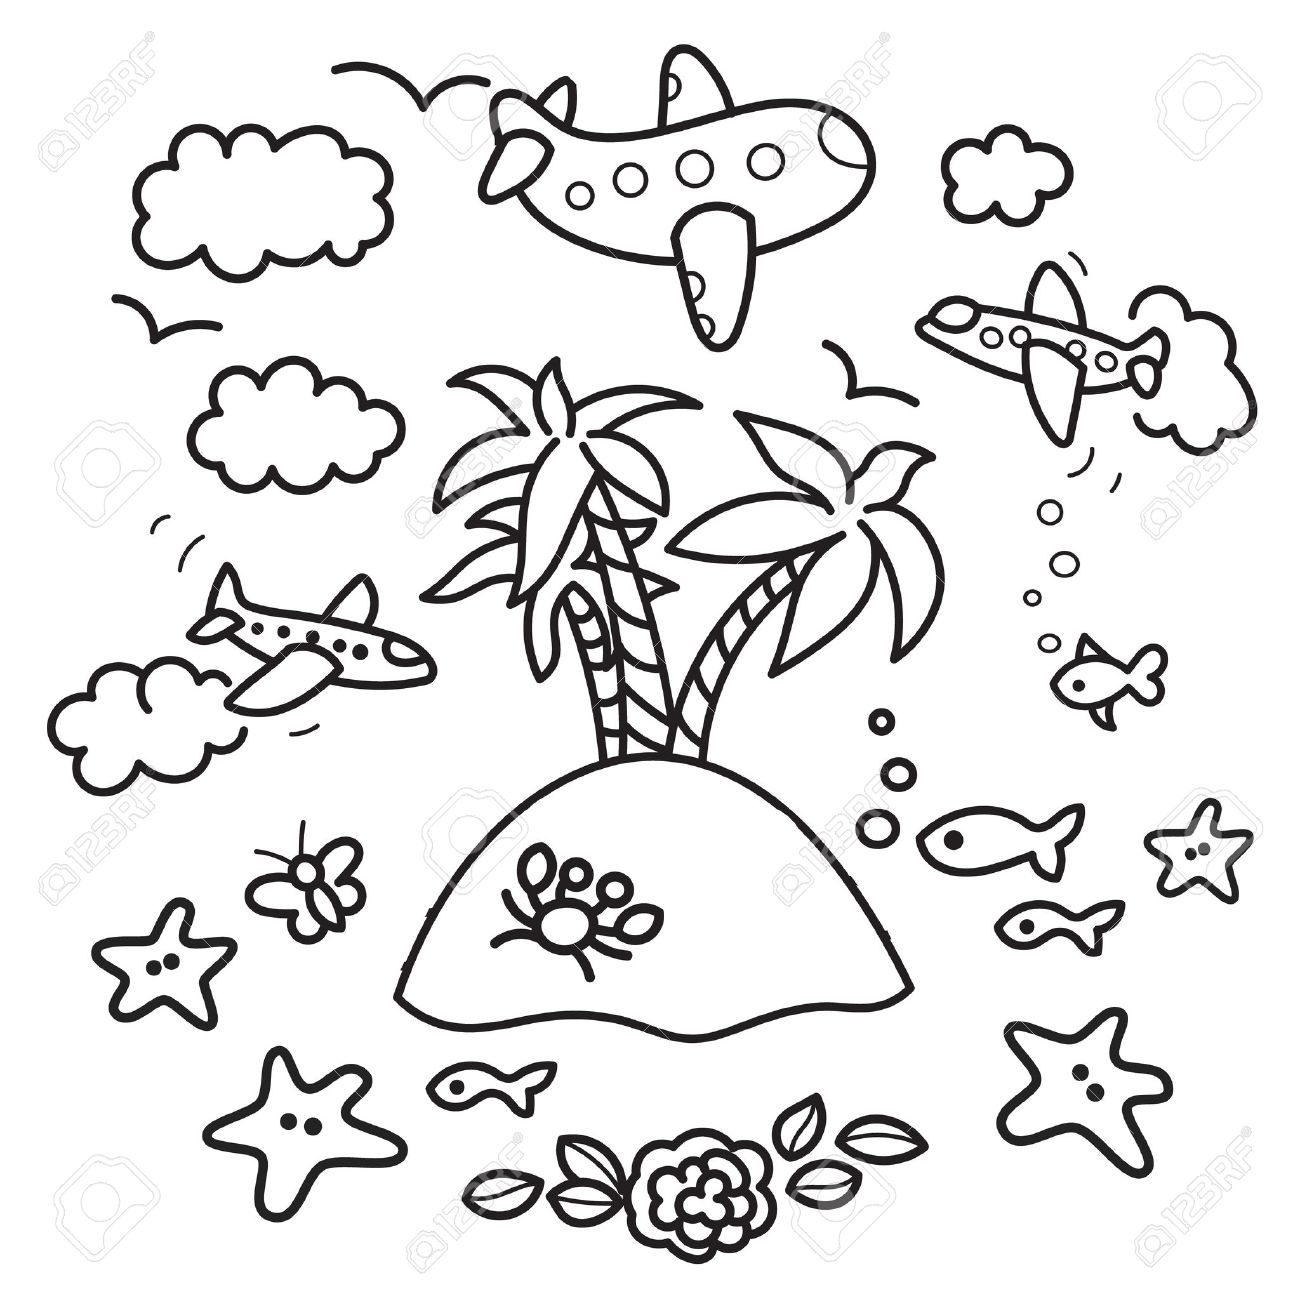 Fish tank drawing pictures - Freehand Drawing Paradise Island In Fish Tank Flying Airplanes Concept Of Dream About